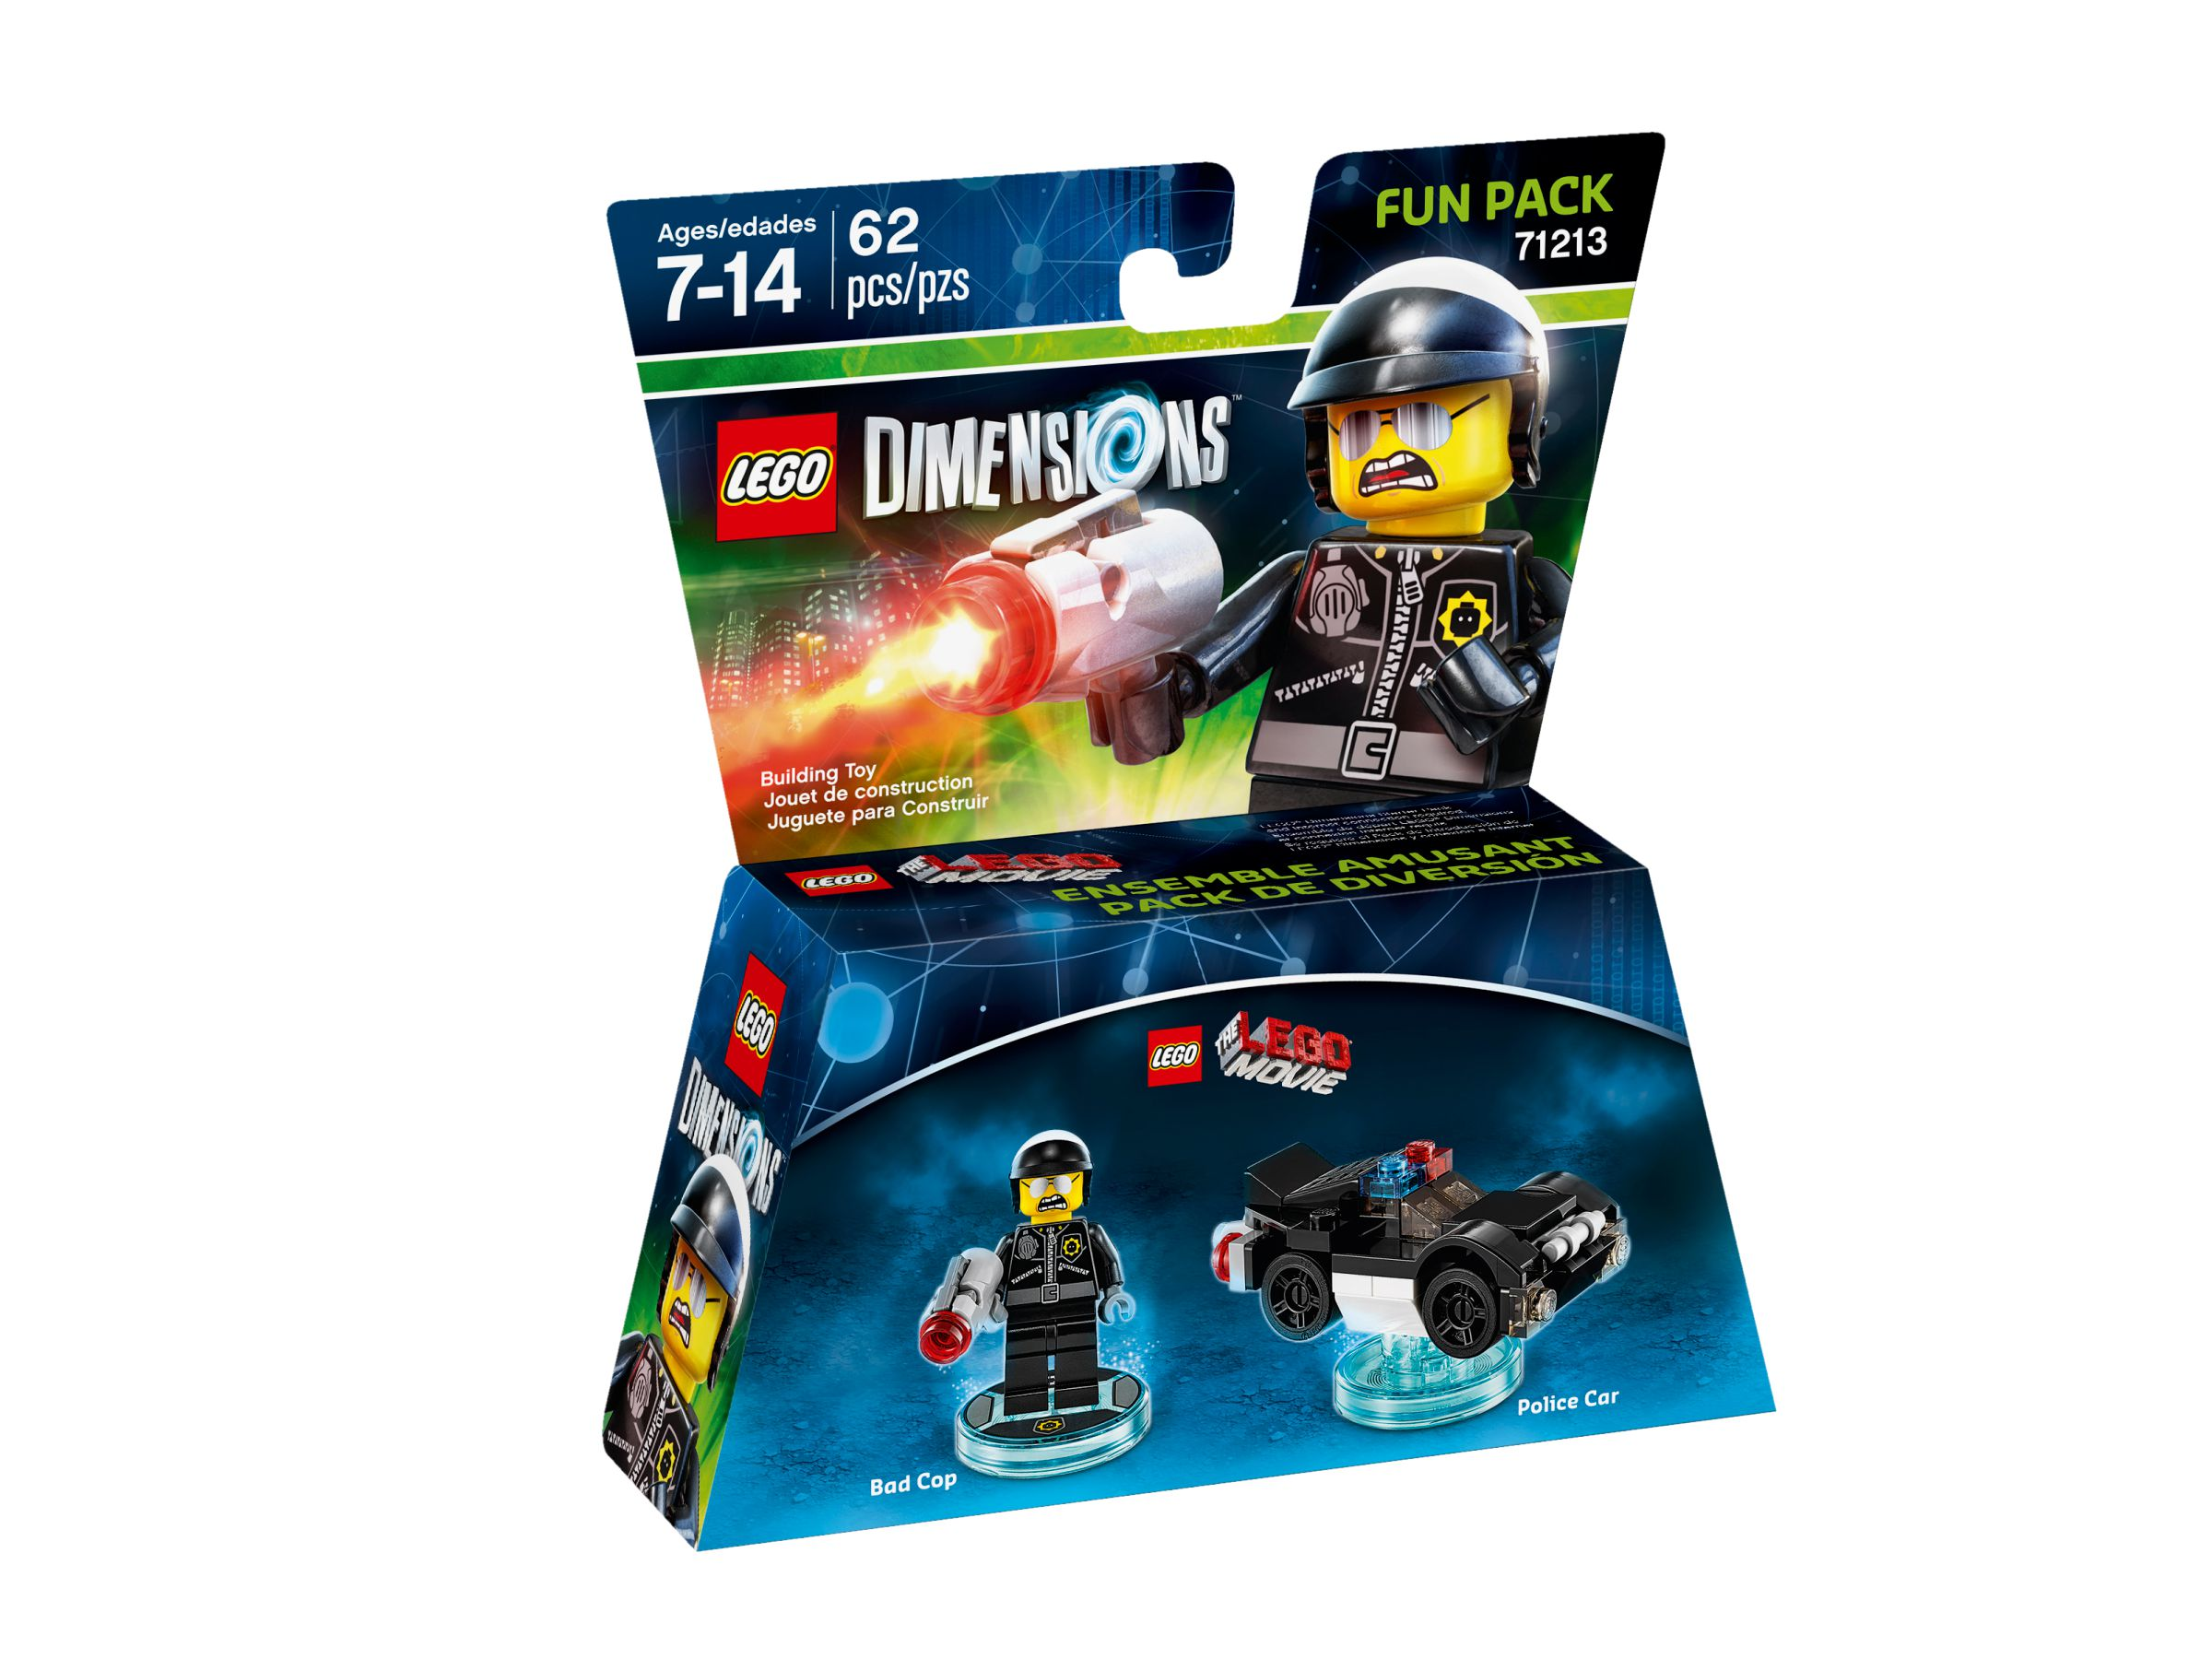 LEGO Dimensions 71213 Fun Pack Bad Cop LEGO_71213_alt1.jpg